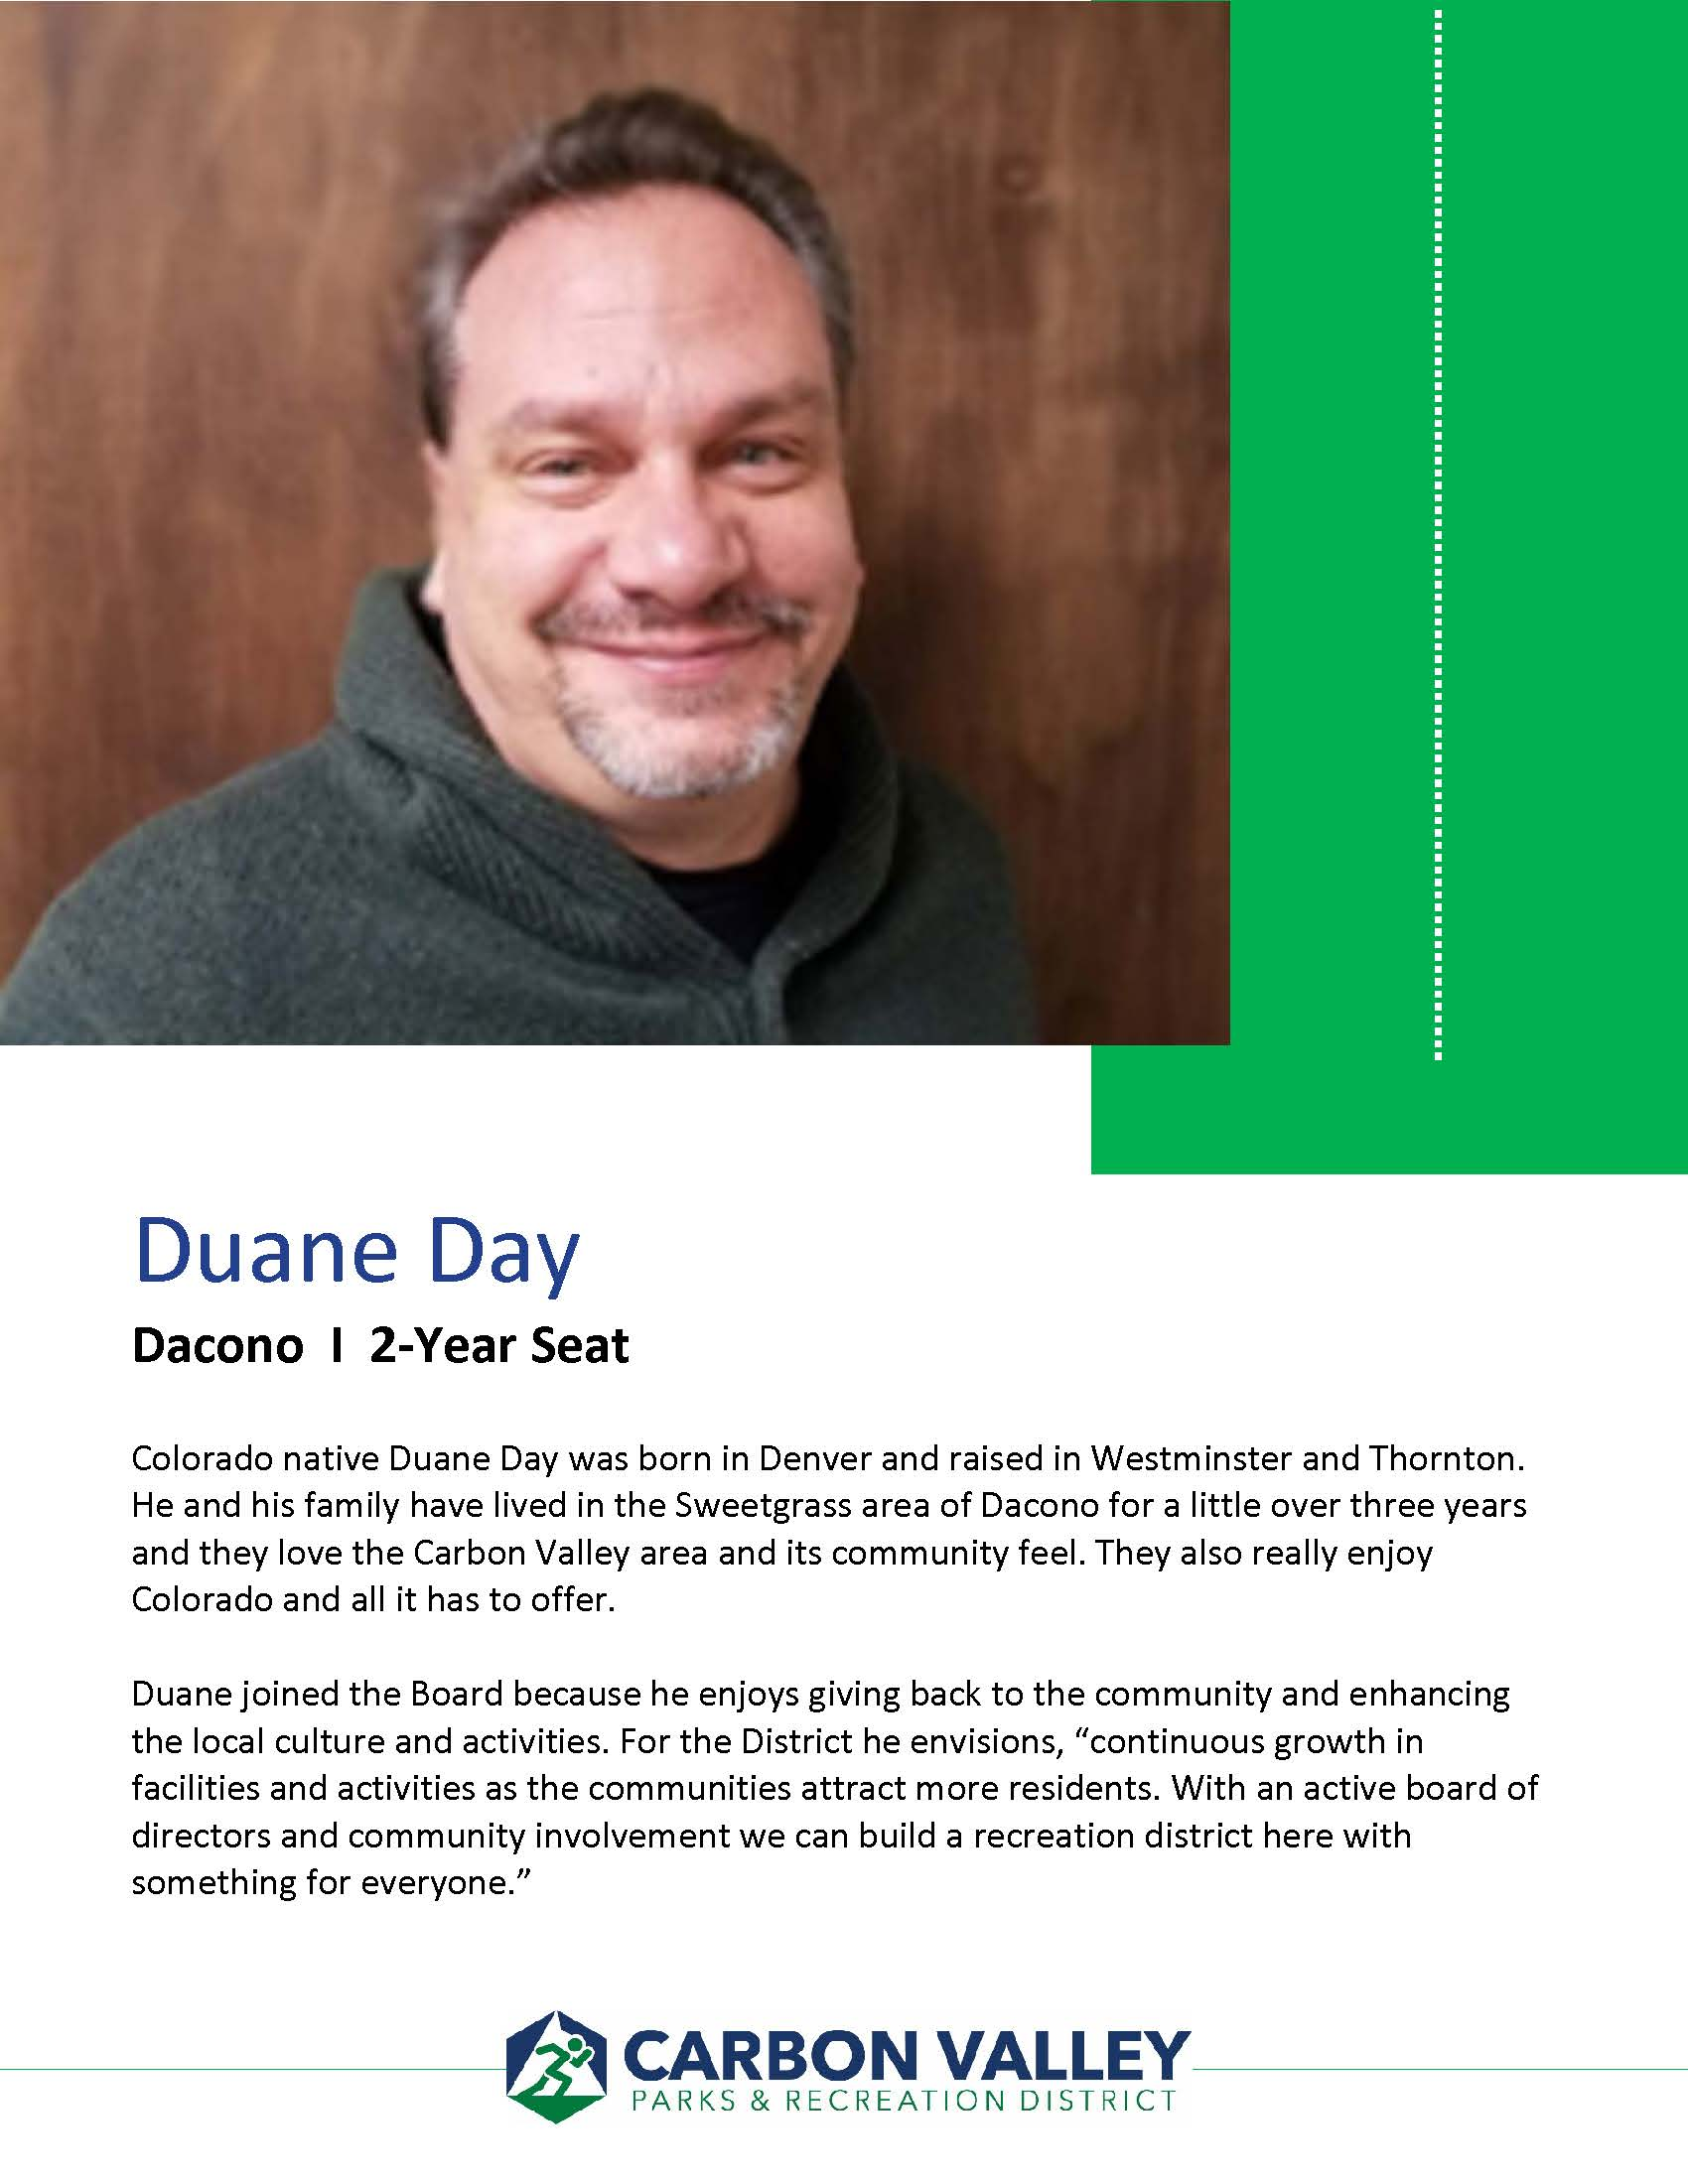 Duane Day